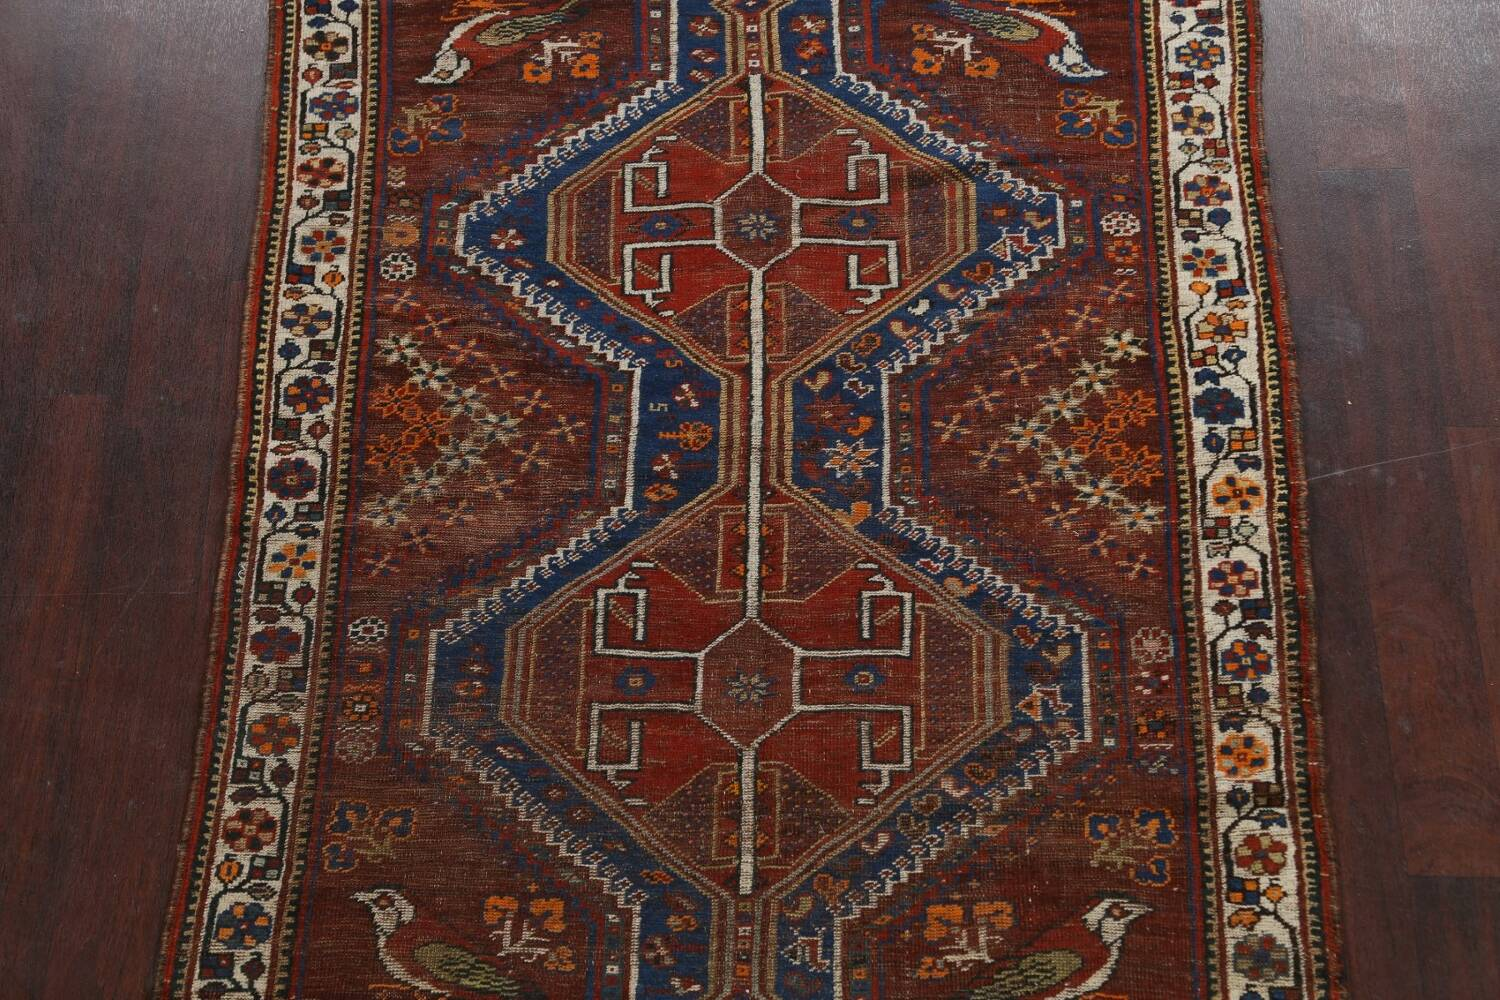 Pre-1900 Antique Ghashghaie Persian Area Rug 5x6 image 3